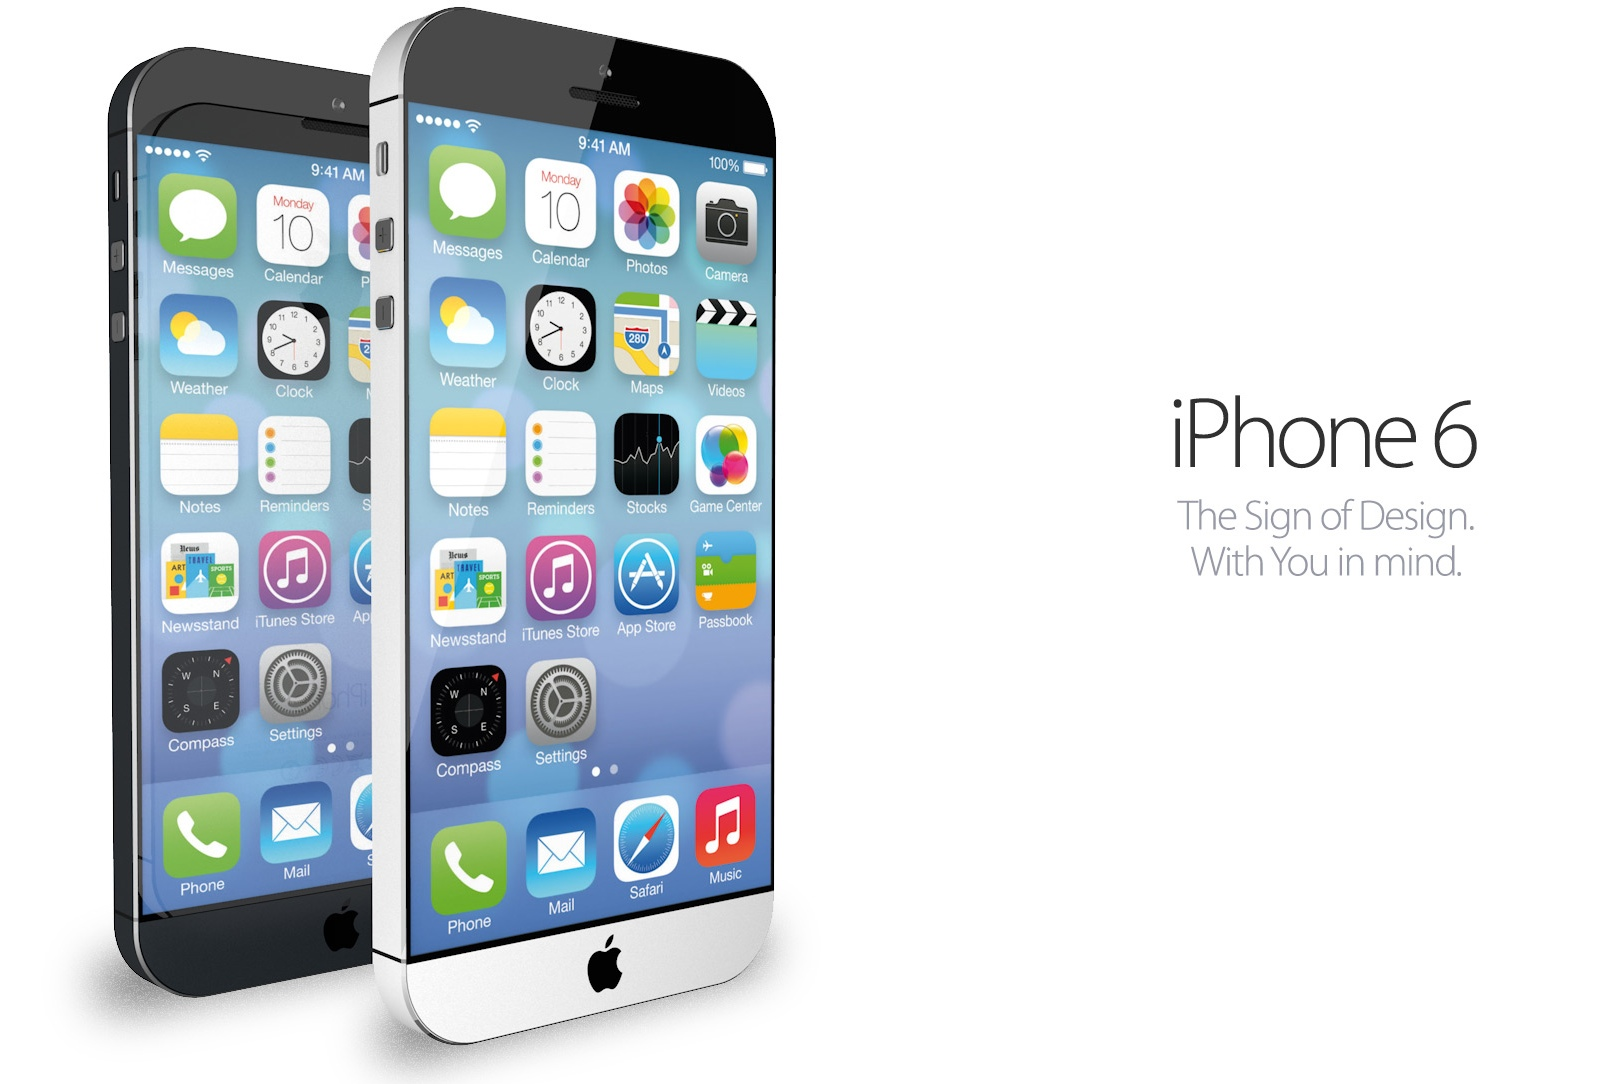 iPhone 6 Features: 10 features users want from Apple on ... |Iphone 6 Features Video Download